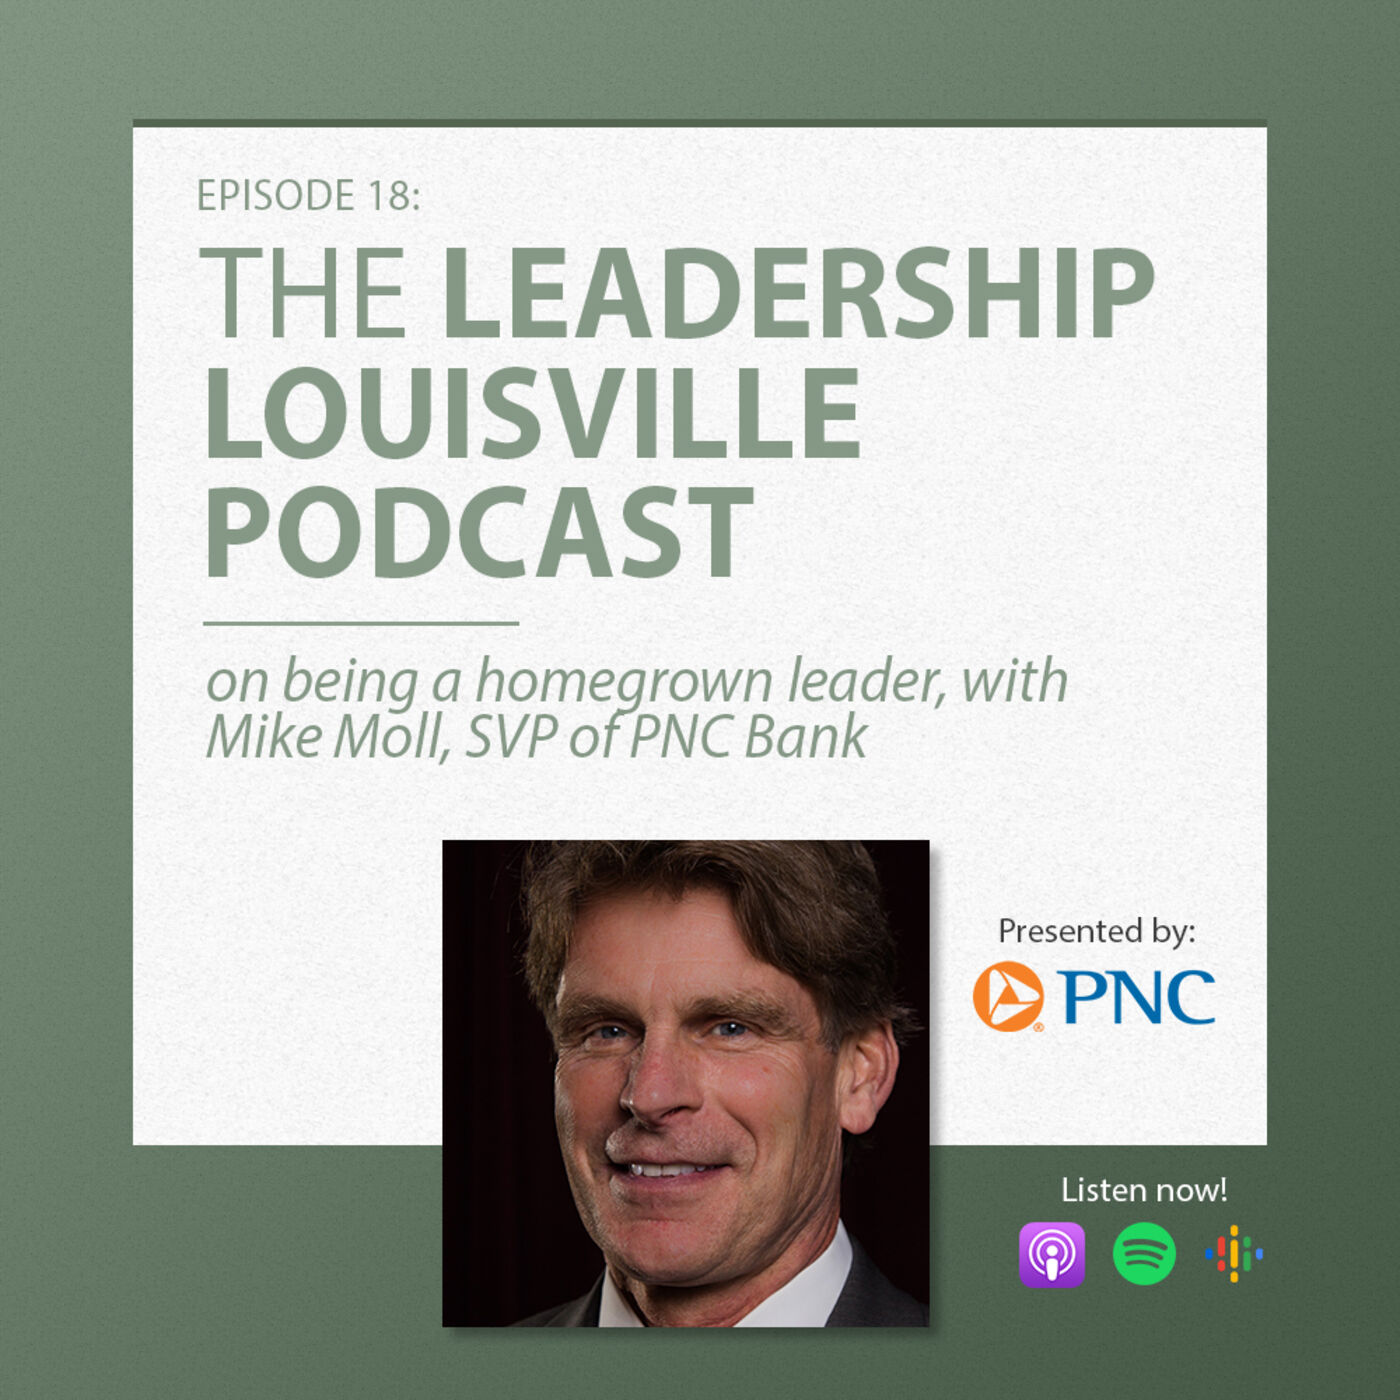 On being a homegrown leader, with Mike Moll, SVP of PNC Bank